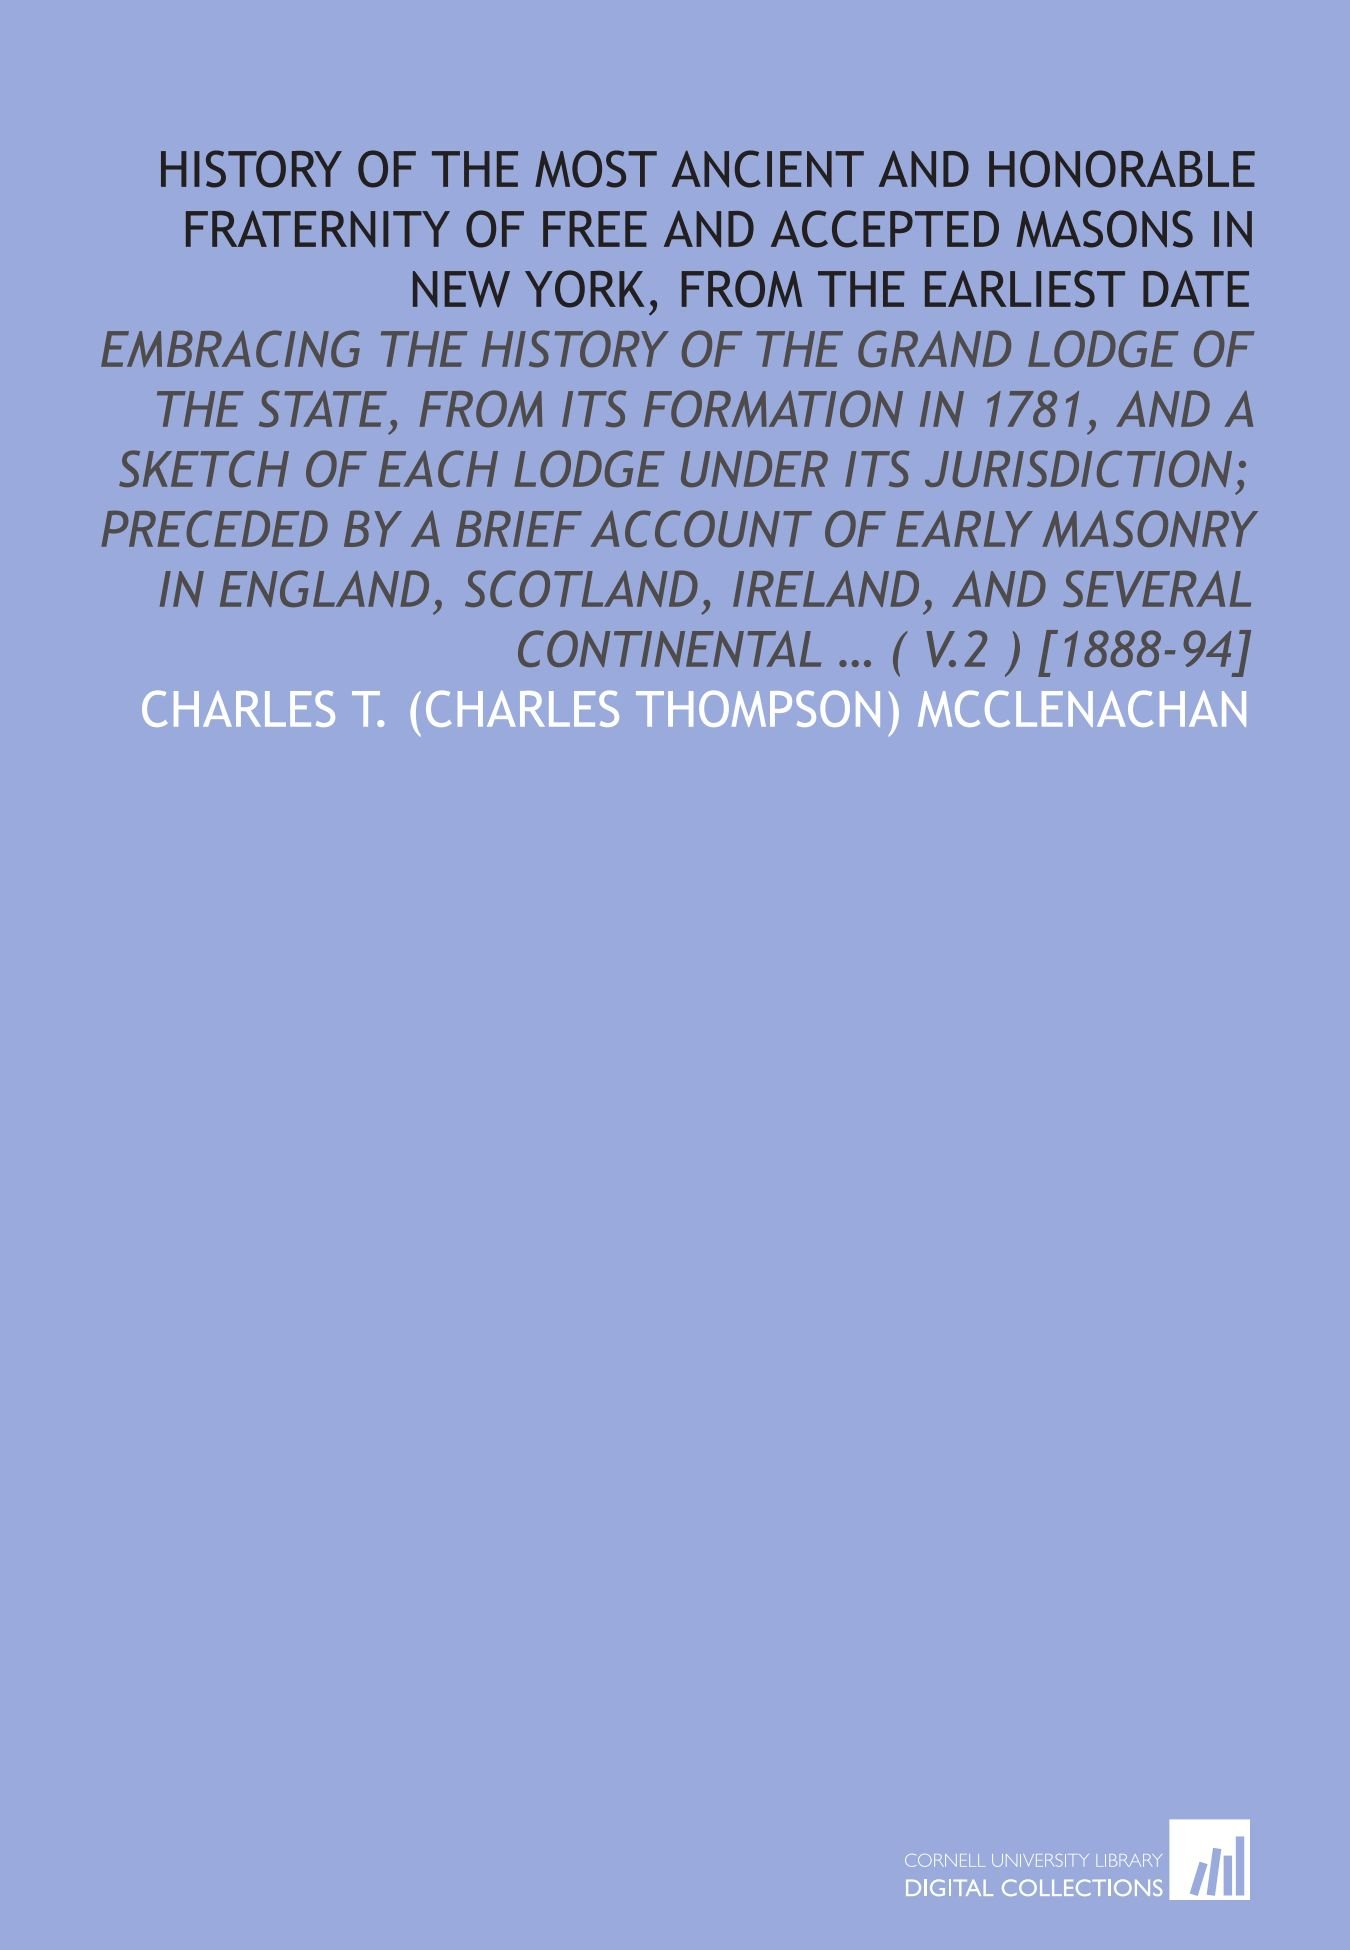 History of the most ancient and honorable fraternity of Free and accepted masons in New York, from the earliest date: Embracing the history of the ... and several continental … ( v.2 ) [1888-94] ebook